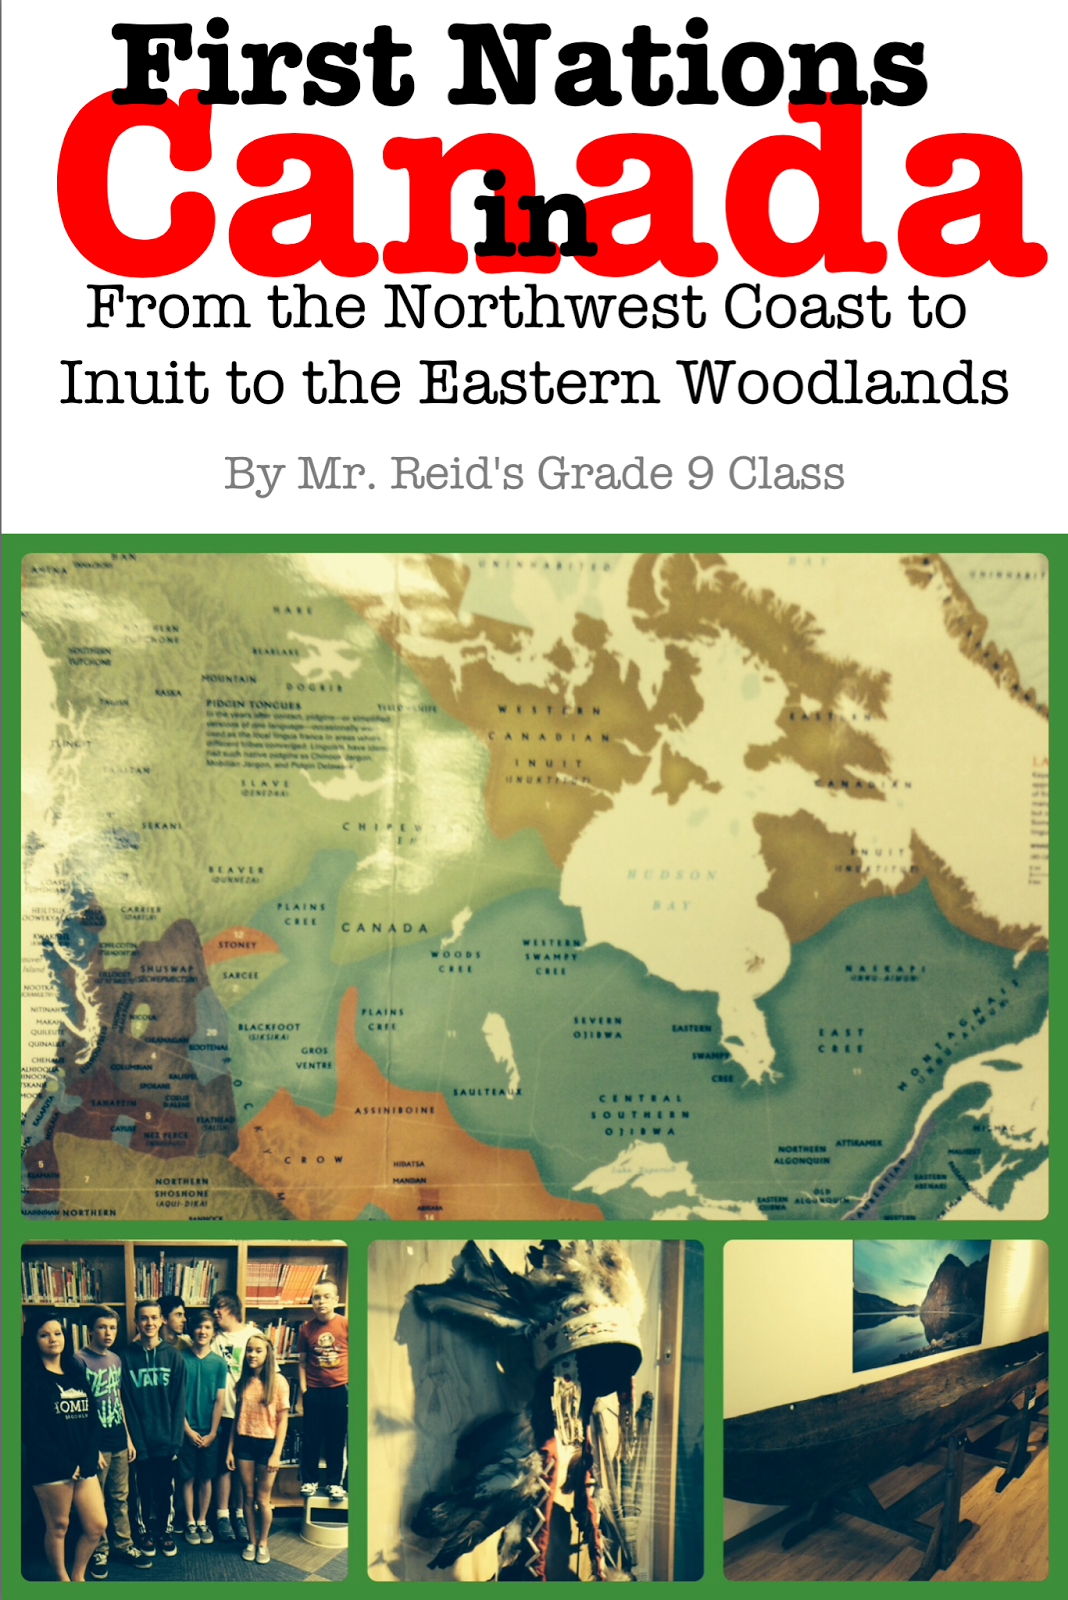 First Nations in Canada: From the Northwest Coast to Inuit to the Eastern Woodlands